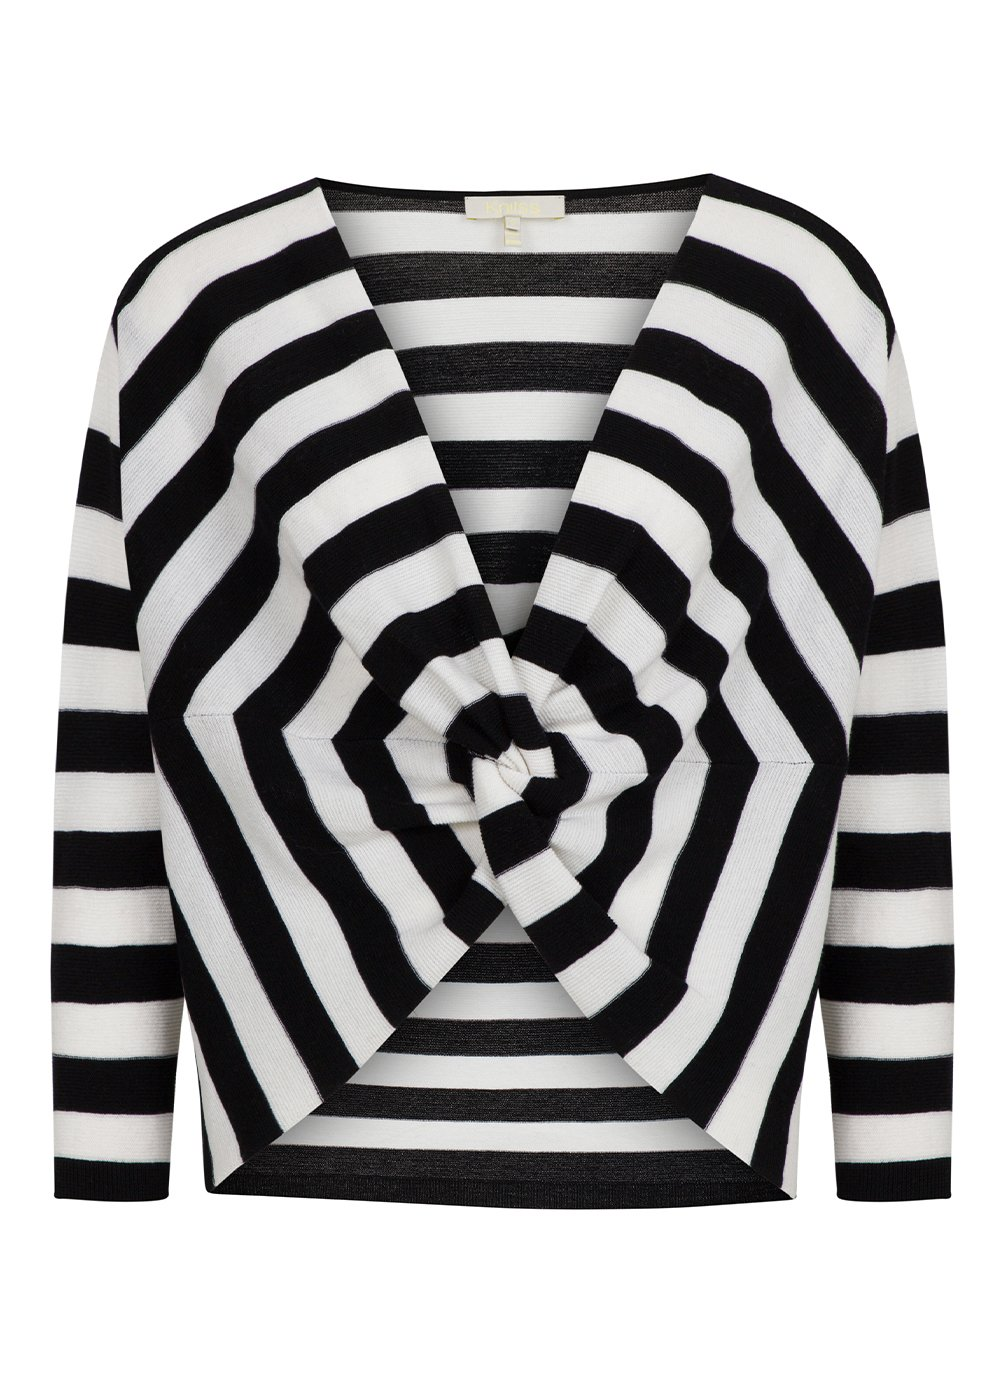 V Collar Pure Wool Black White Knit Sweater